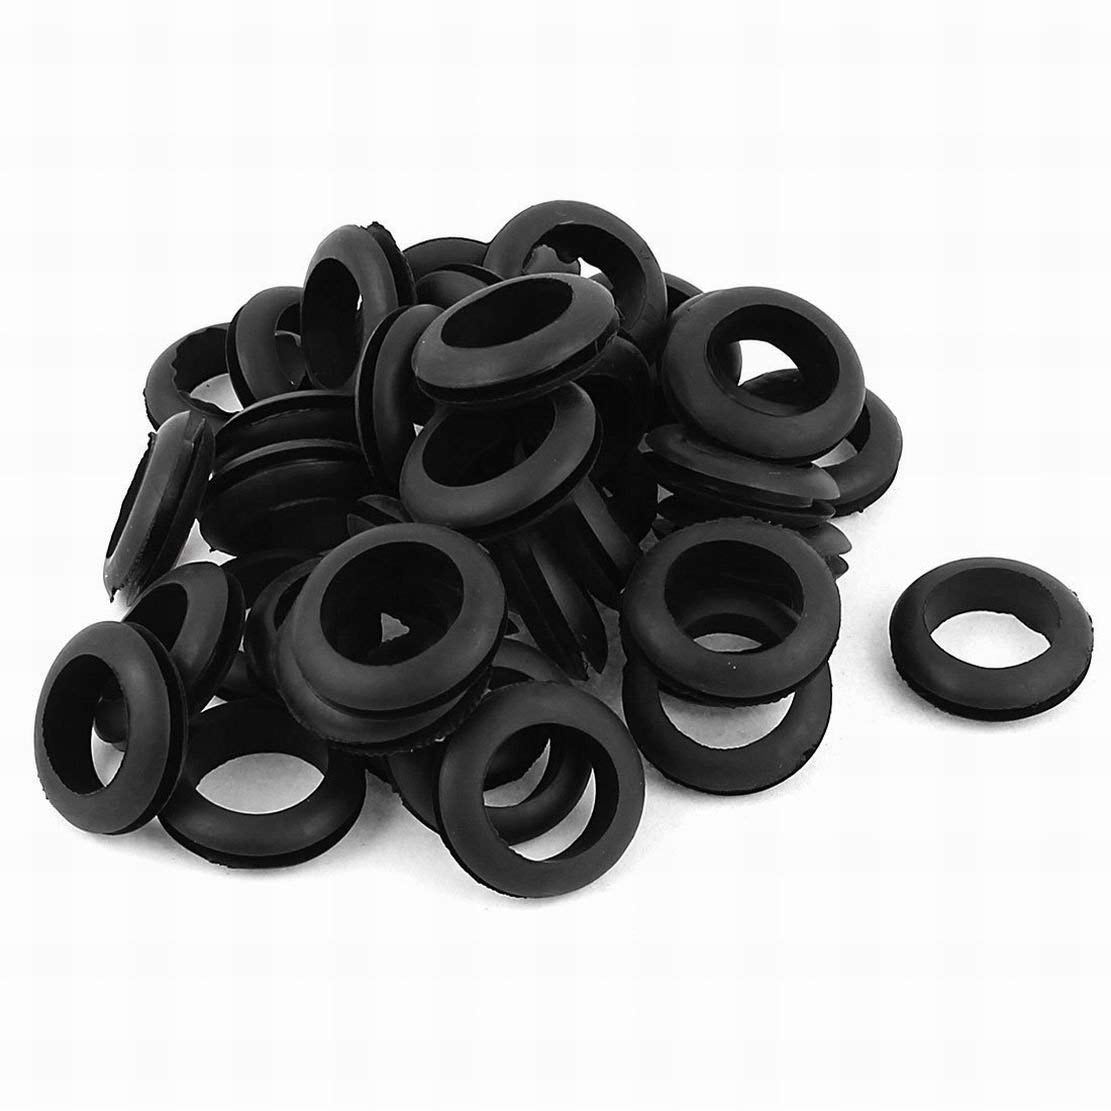 Cheap Ppap Wiring Rubber Grommet Find Grommets Get Quotations Houseuse Electrical Gasket 18mm Cable Hole Dia 40pcs